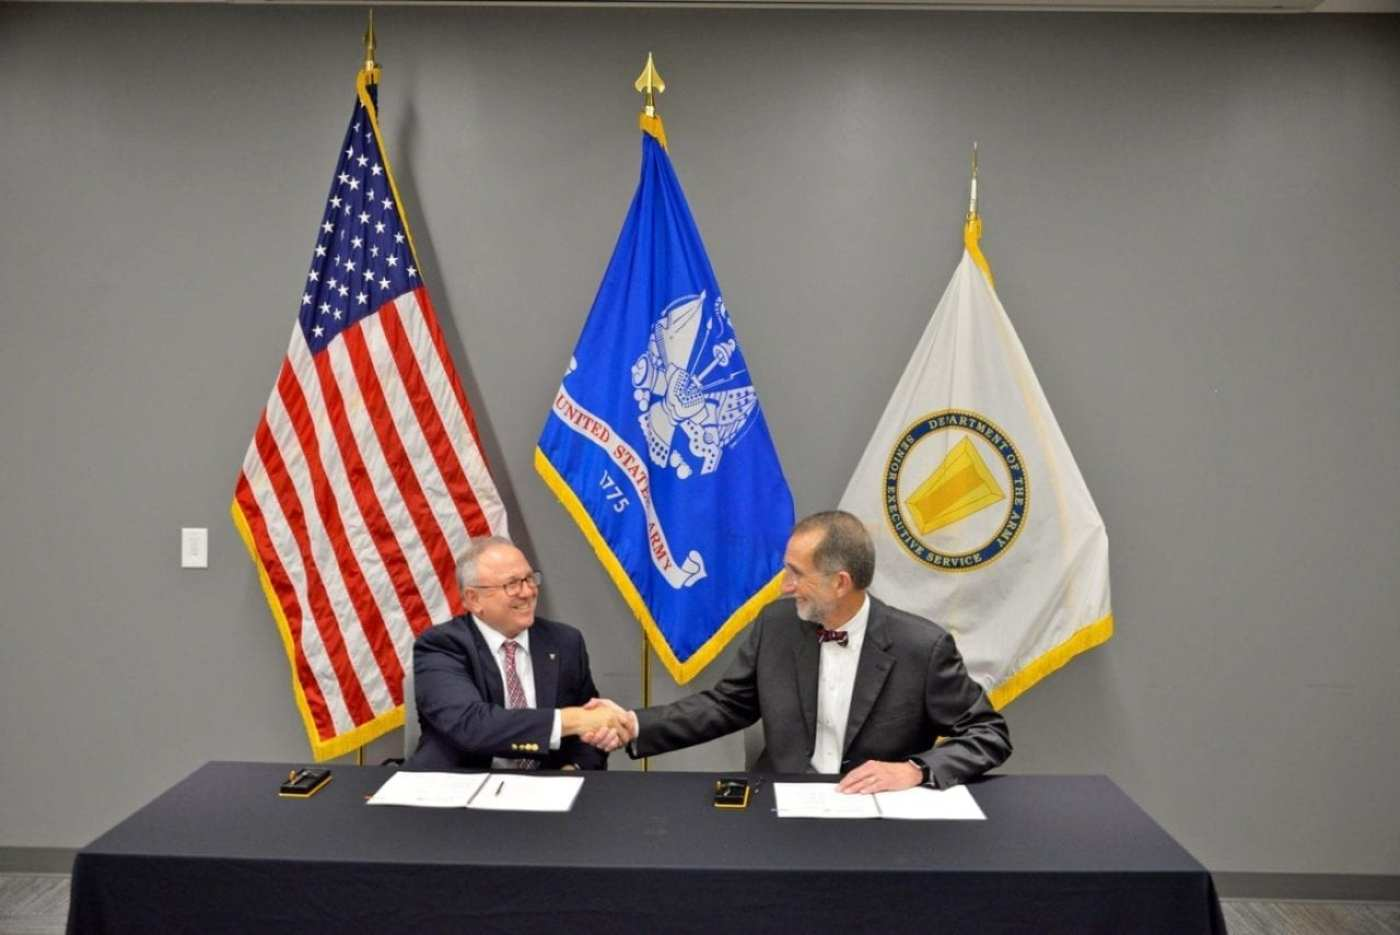 Dr. Barton H. Halpern, director of the Army Research Office, an element of the U.S. Army Combat Capabilities Development Command's Army Research Laboratory (left), and Dr. William Roper, UNC System interim president (right) formed a new partnership between the Army and individual UNC System institutions to stimulate student interest in STEM education, particularly in areas of relevance to the Department of Defense's mission. The Educational Partnership Agreement will facilitate sharing of information and resources between the Army and individual UNC institutions.